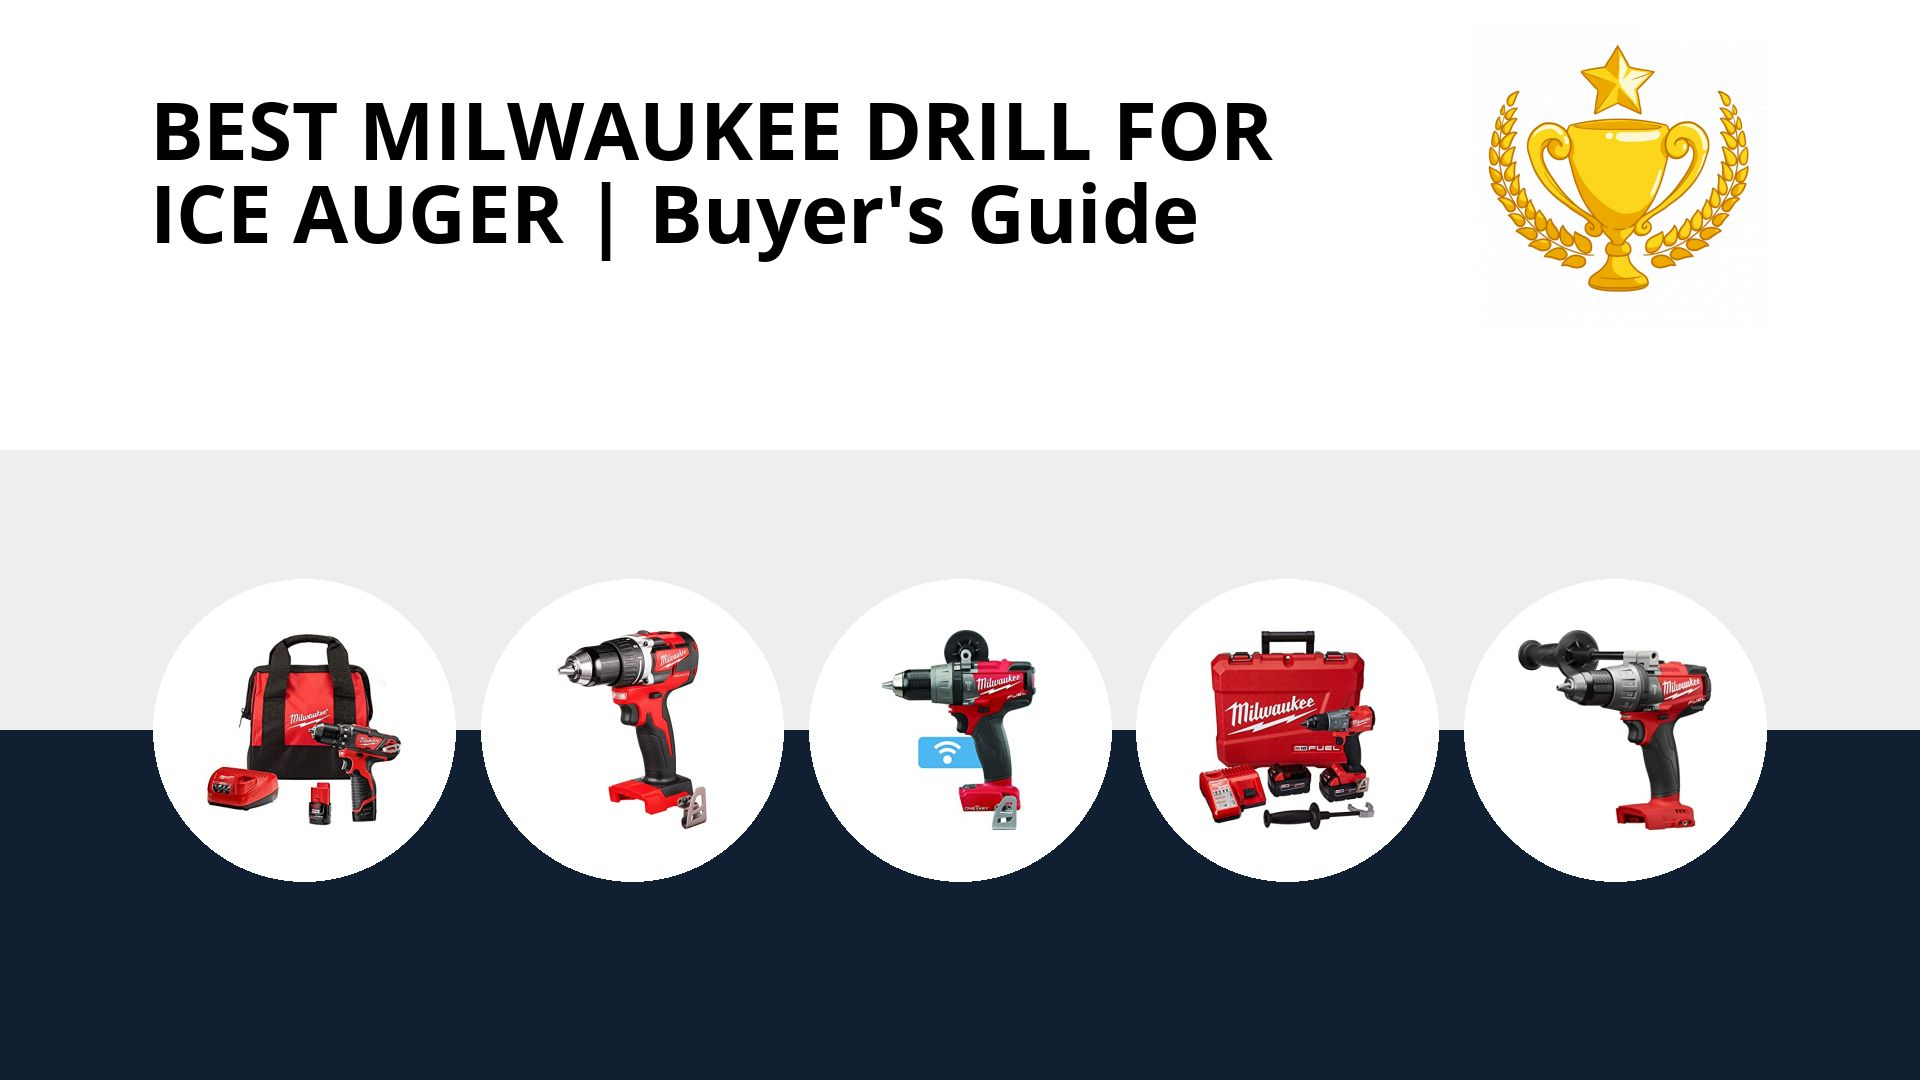 Best Milwaukee Drill For Ice Auger: image